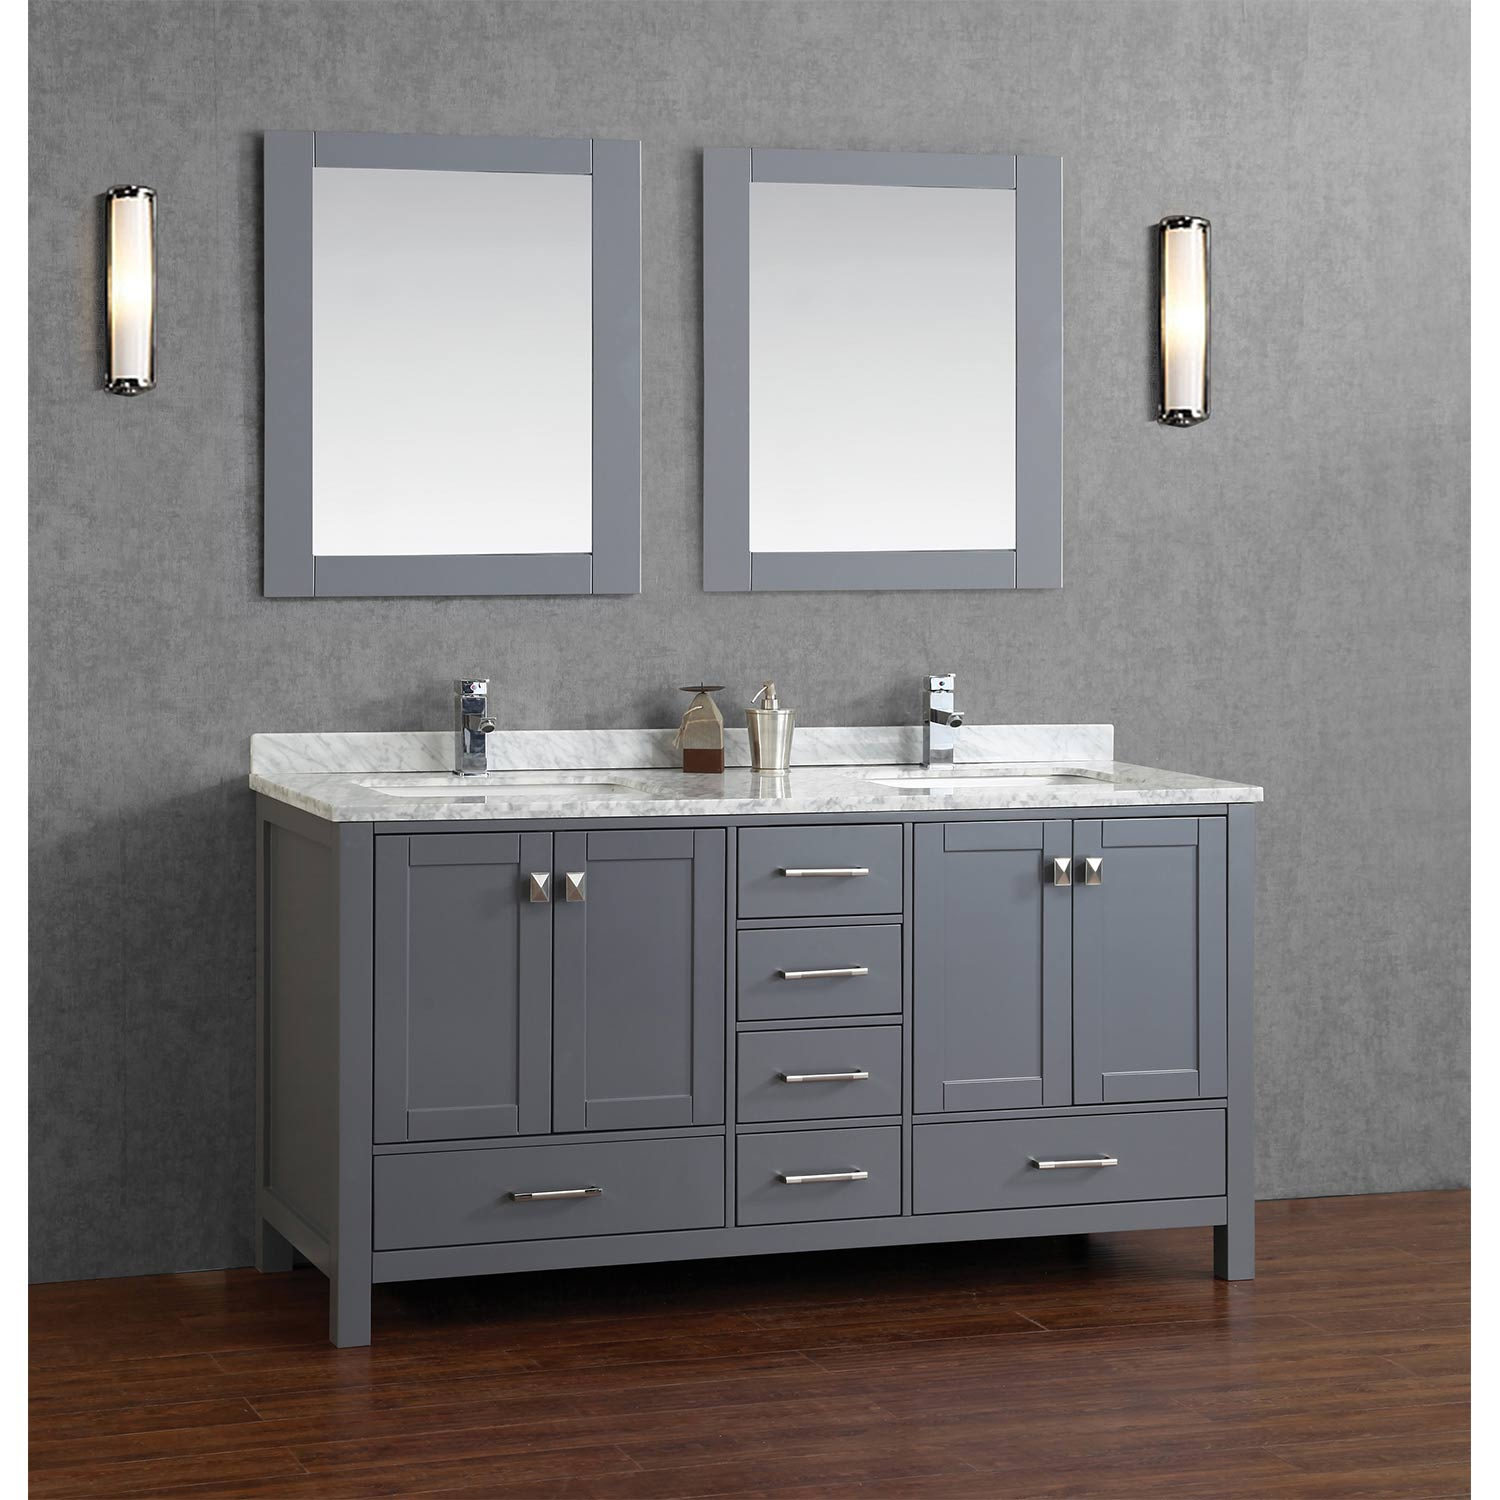 Vincent 72 Solid Wood Double Bathroom Vanity In Charcoal Grey Hm 13001 Wmsq Cg